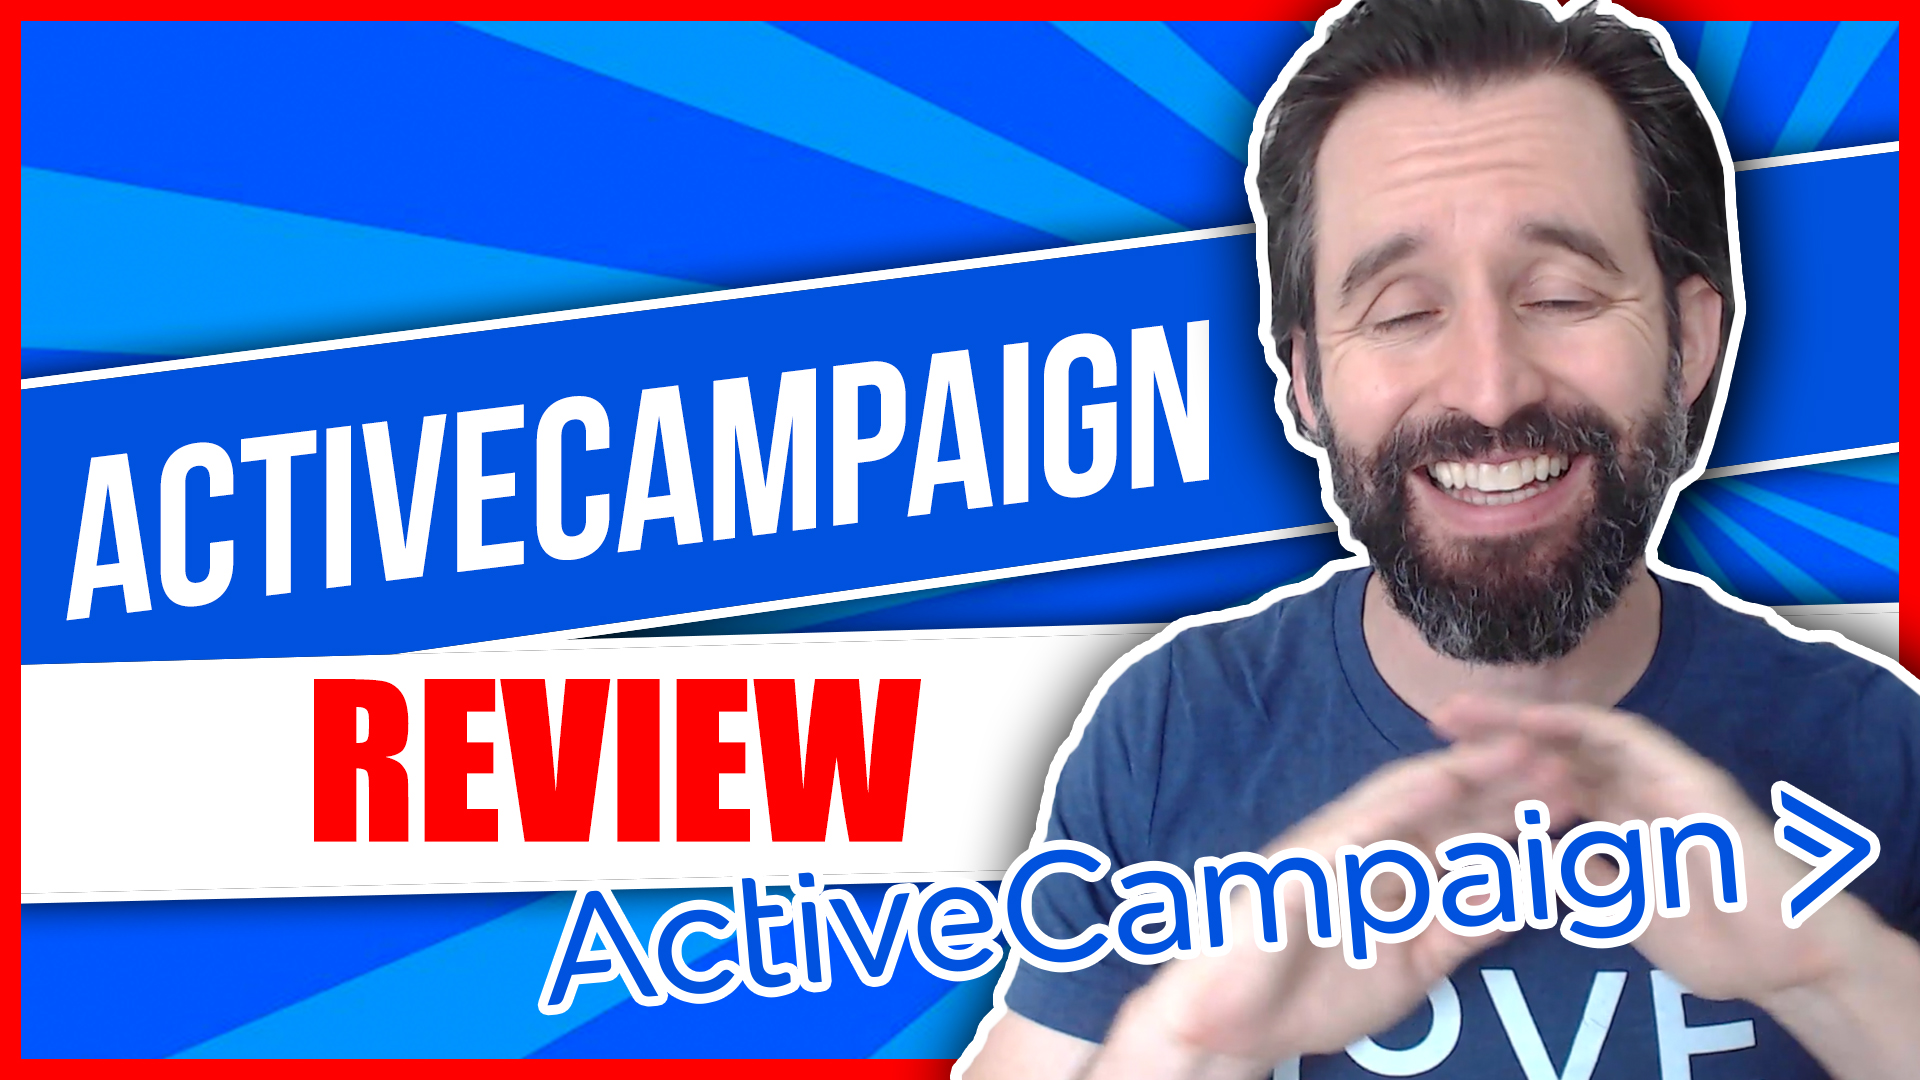 Active Campaign Vs Ontraport